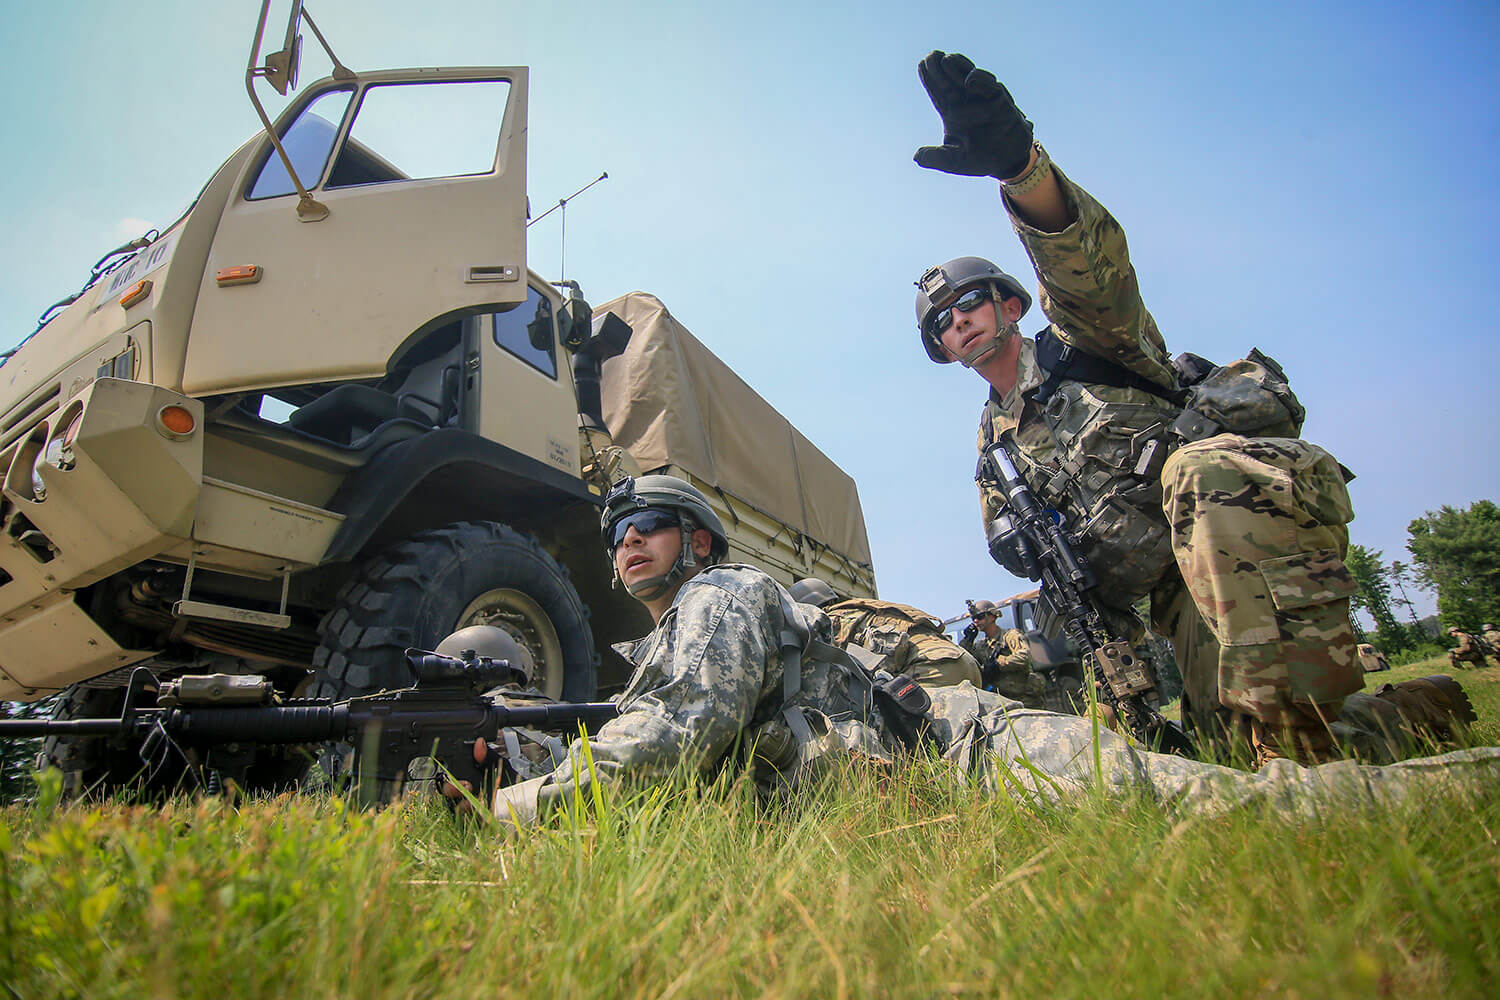 Army National Guard 1LT Robert Angelini (right) from New Jersey's C Troop, 1st Squadron, 102nd Cavalry Regiment, points out enemy locations to fellow Soldiers during a training mission on Joint Base McGuire-Dix-Lakehurst, N.J. New Jersey National Guard photo by MSgt Matt Hecht